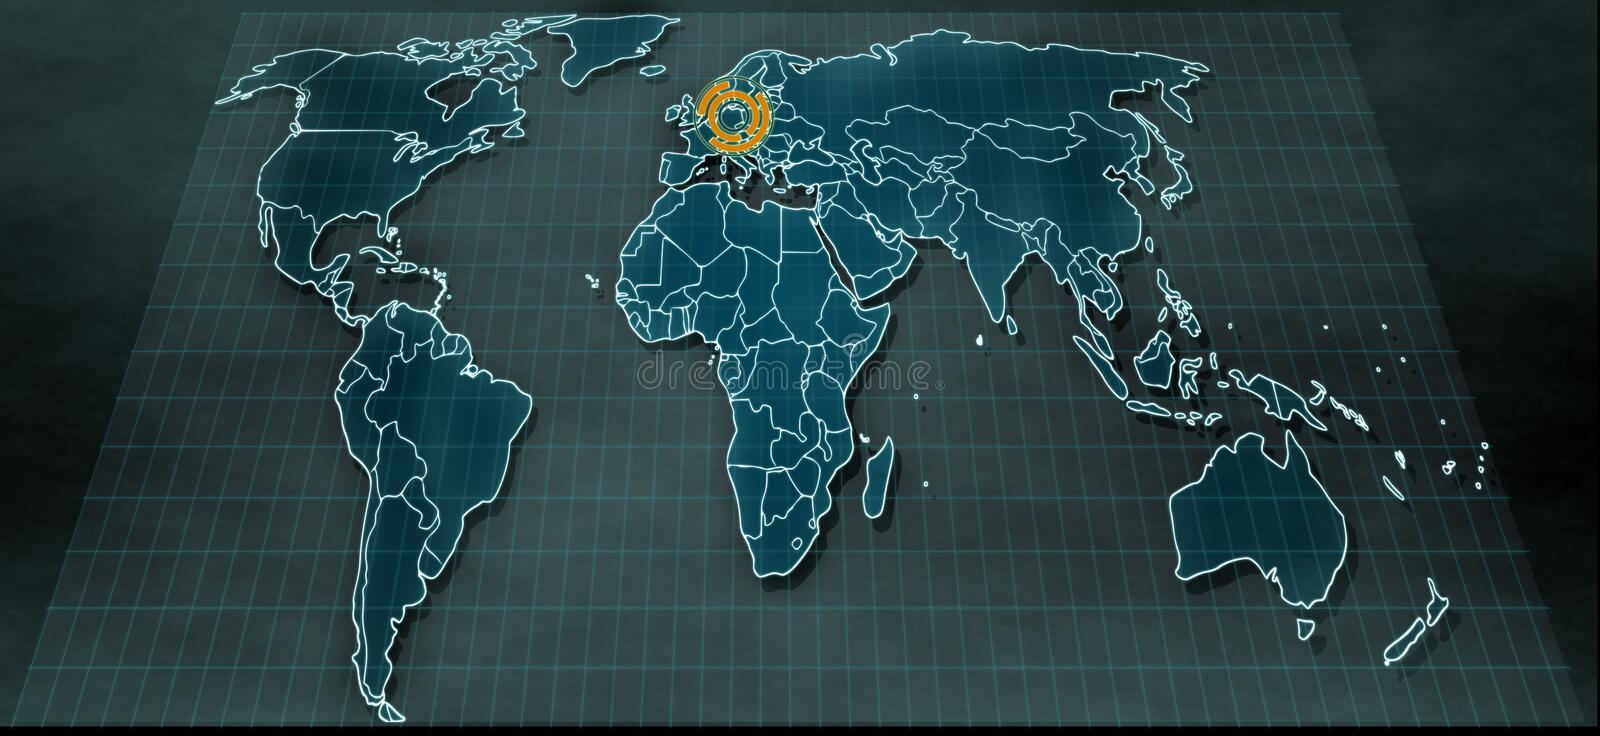 Futuristic world map in digital display with highlight on Berlin stock photography